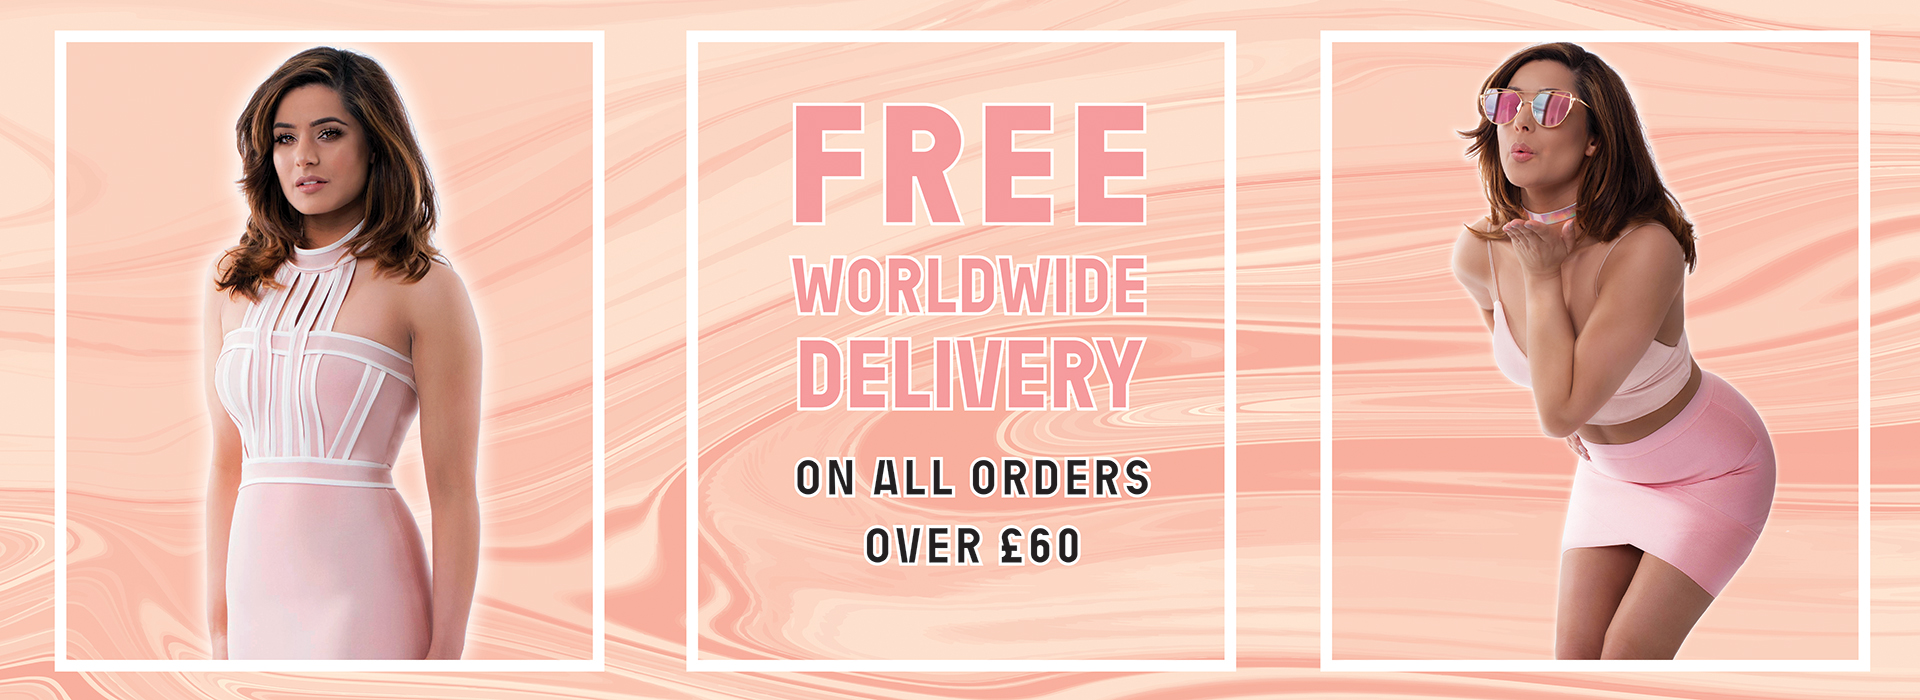 free worldwide delivery on orders over £60